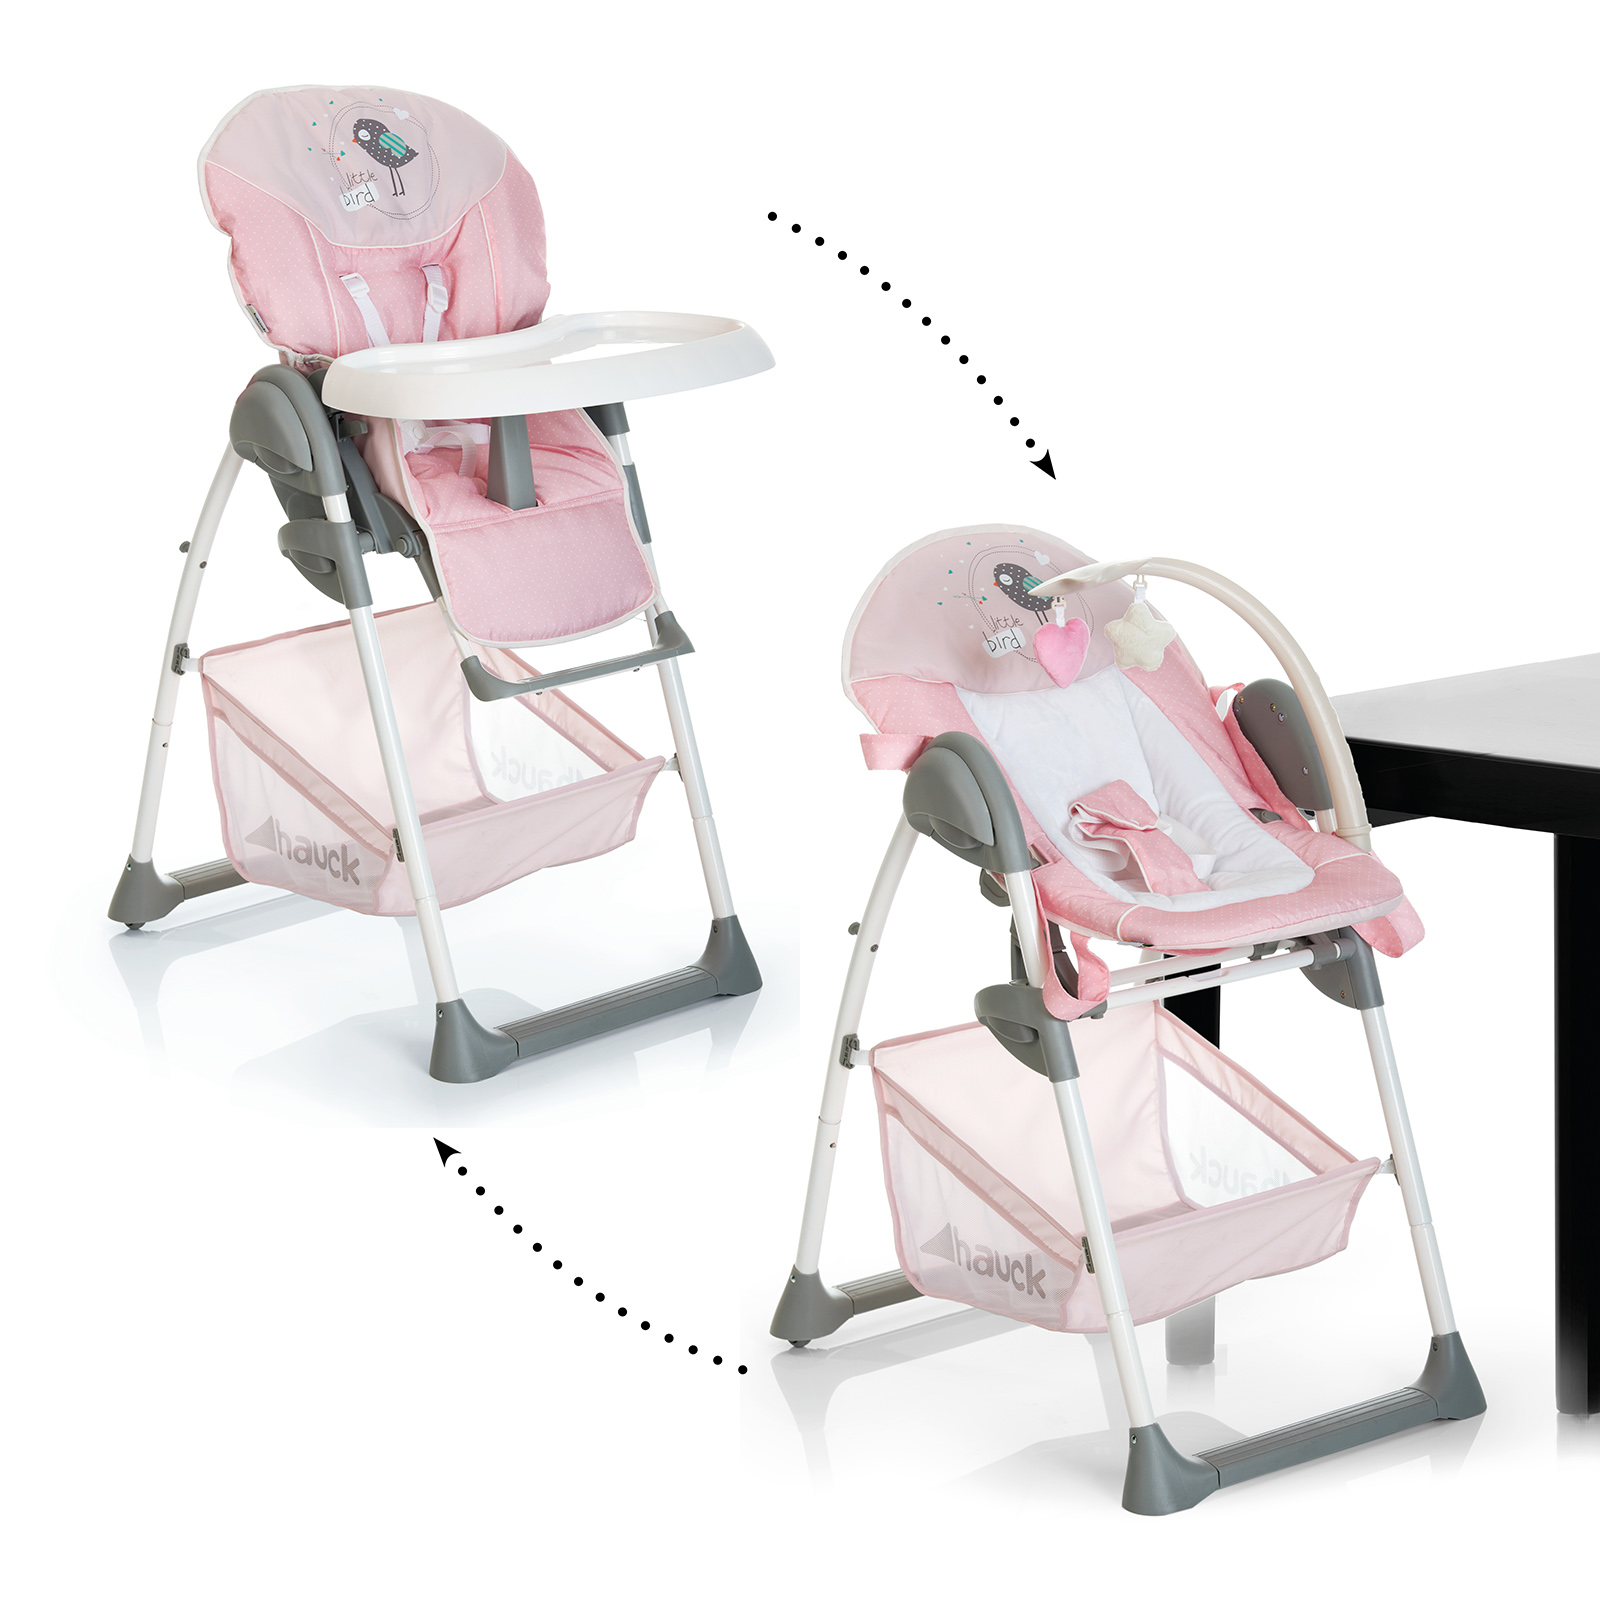 hauck sit n relax 2 in 1 highchair bouncer birdie buy at online4baby. Black Bedroom Furniture Sets. Home Design Ideas